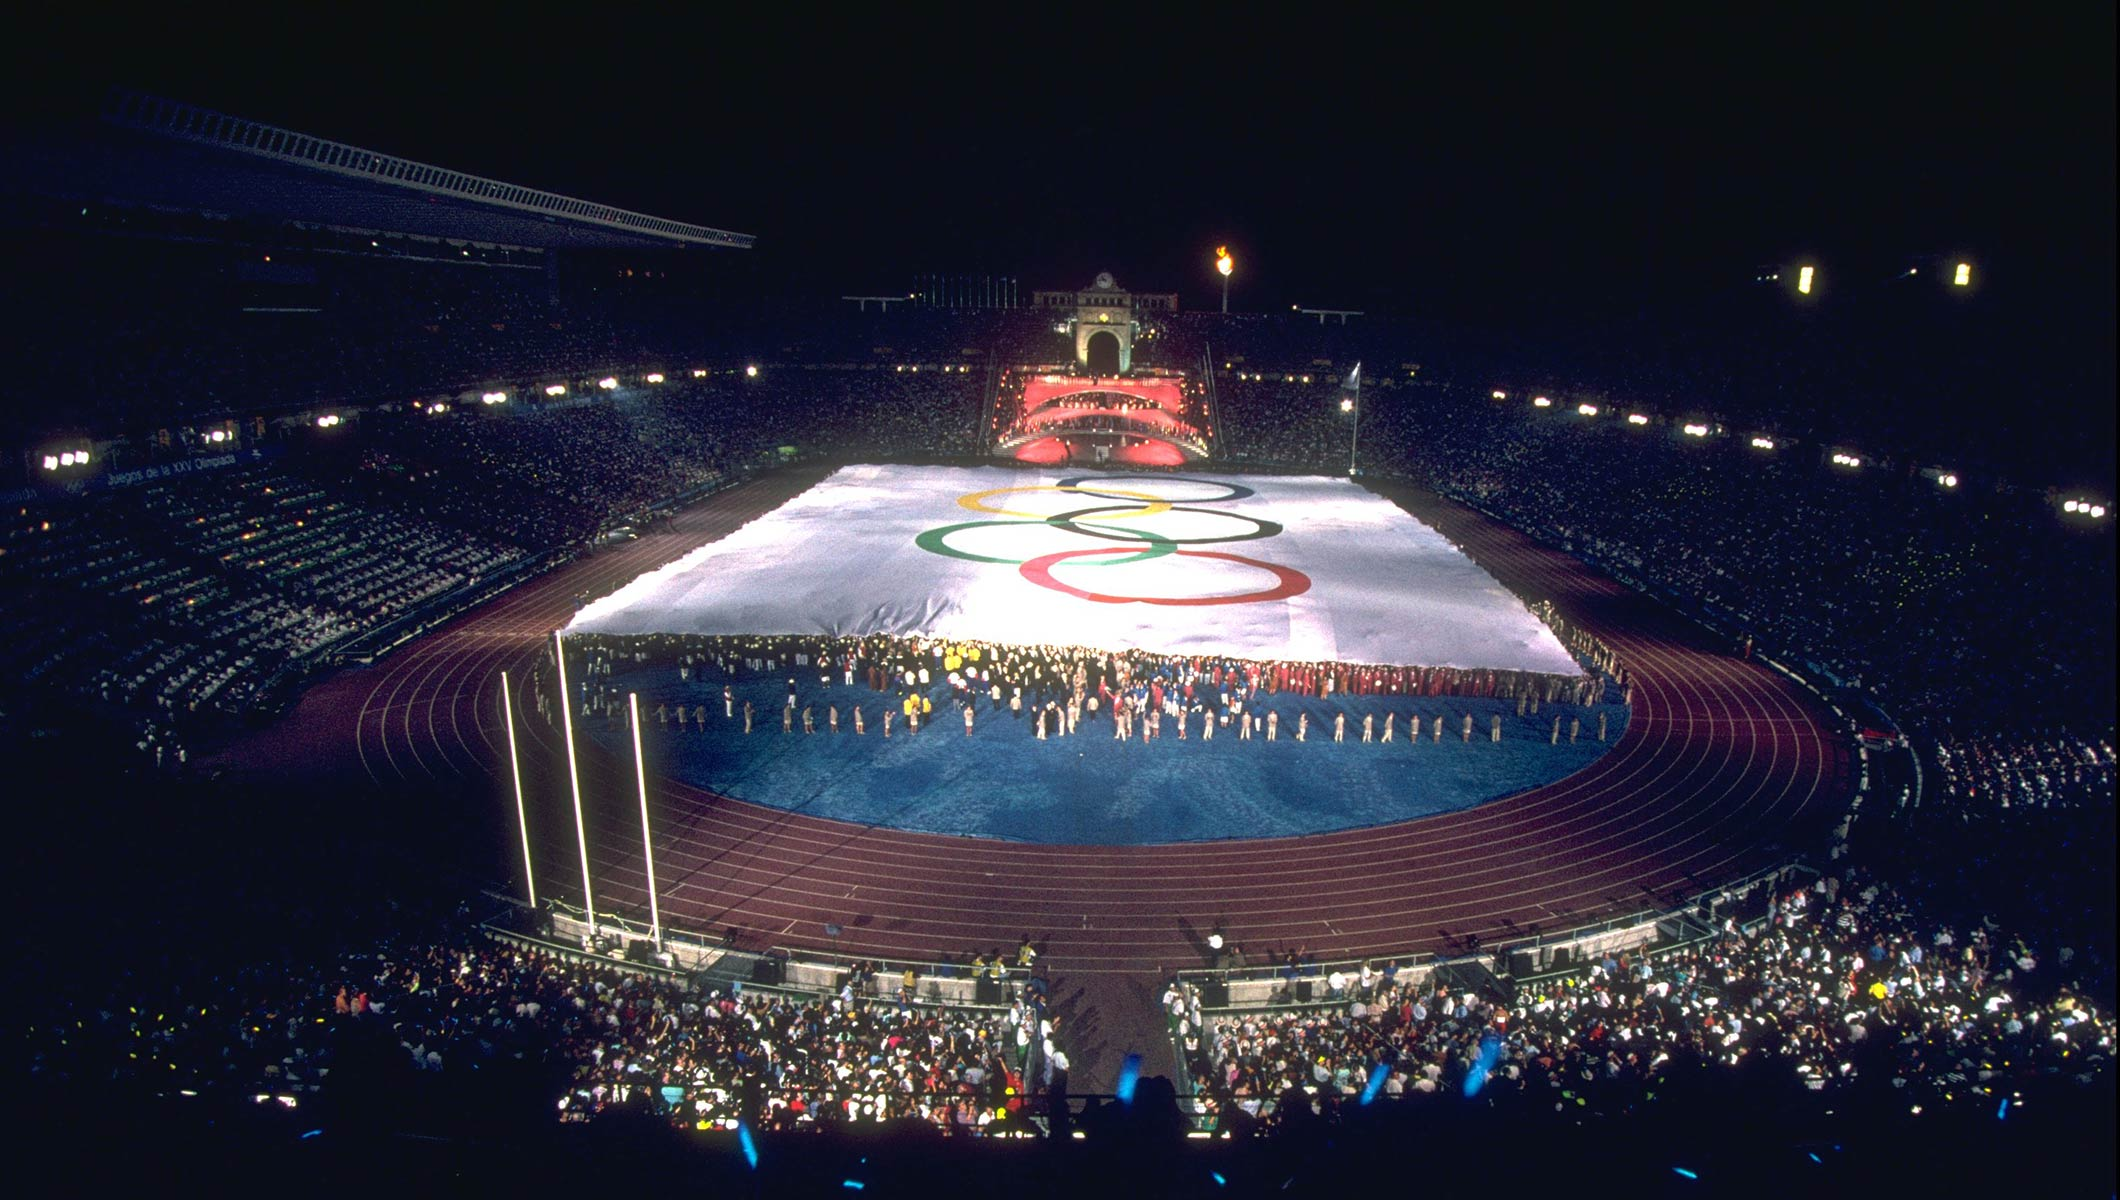 Bercelona 1992 Opening Ceremony